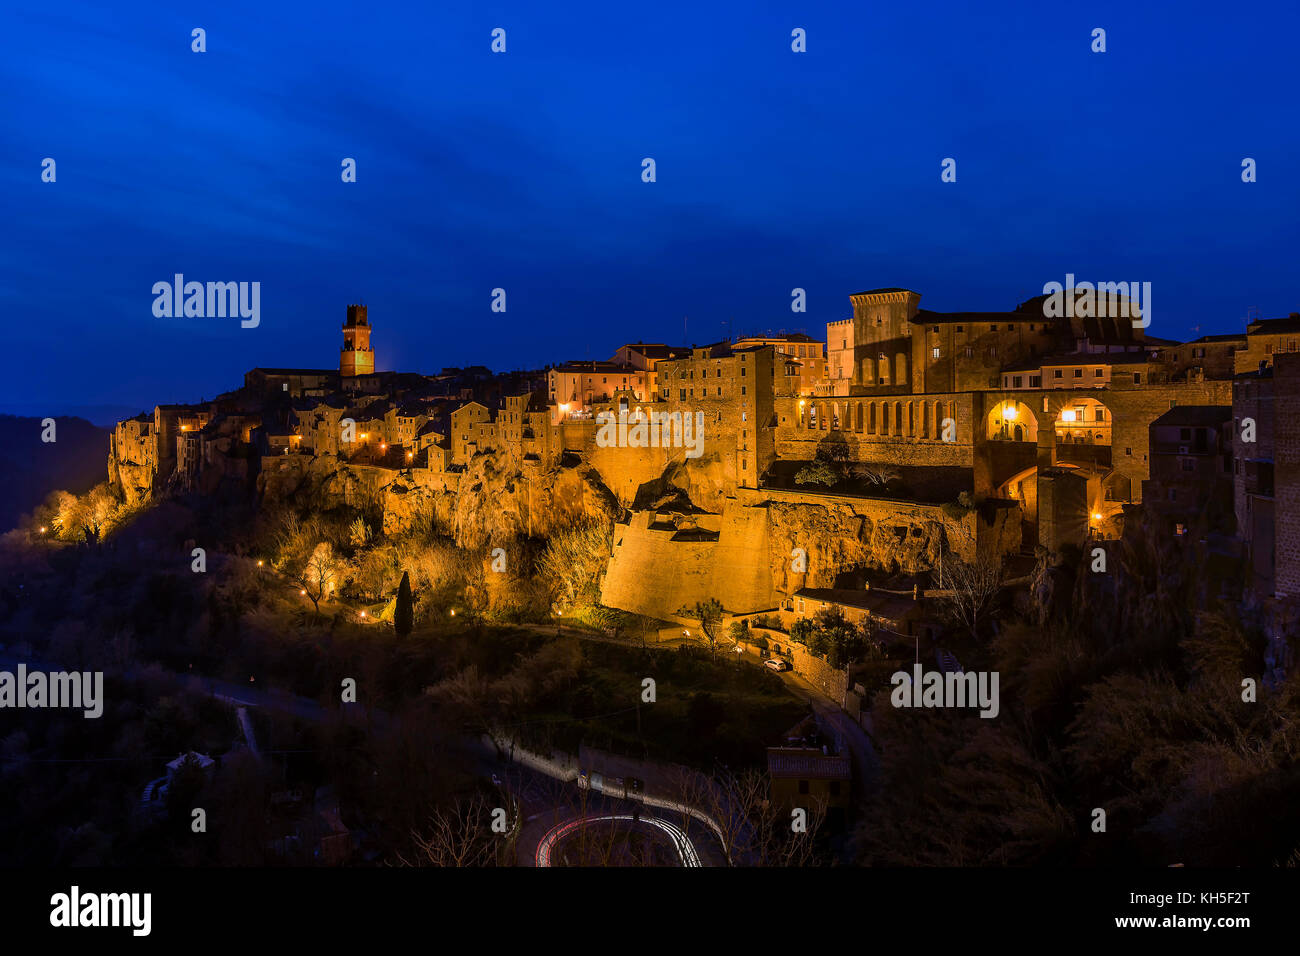 Blue hour in Pitigliano, Tuscany, Italy - Stock Image